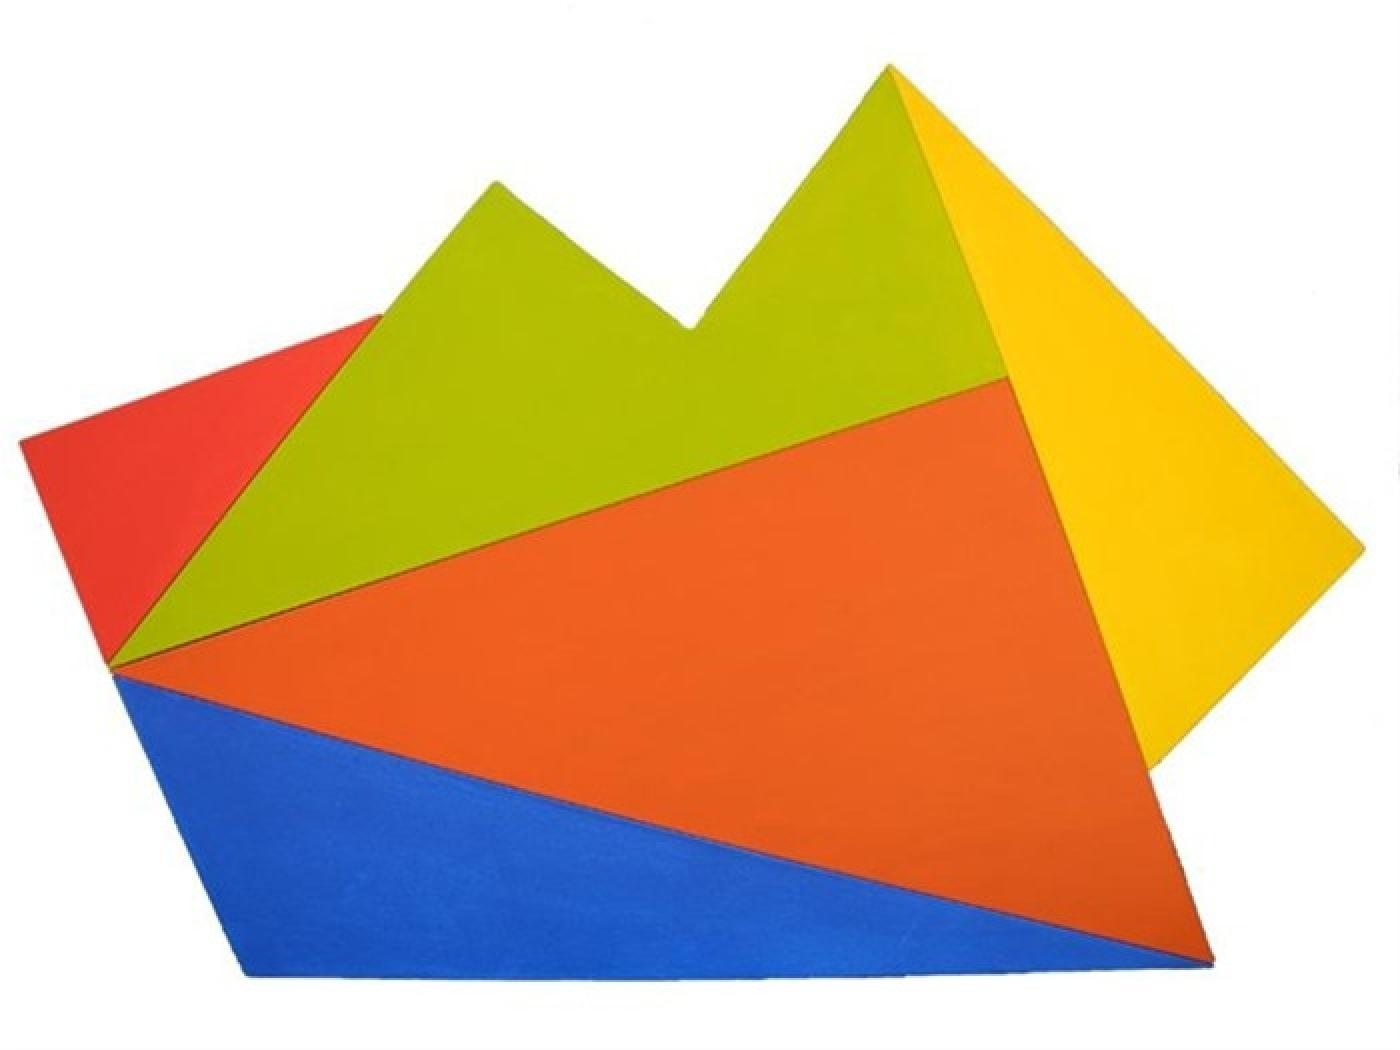 Sydney Ball, Infinix #30, 2012, acrylic on shaped canvas, 89 x 131 cm. Courtesy of Charles Nodrum Gallery, Melbourne.